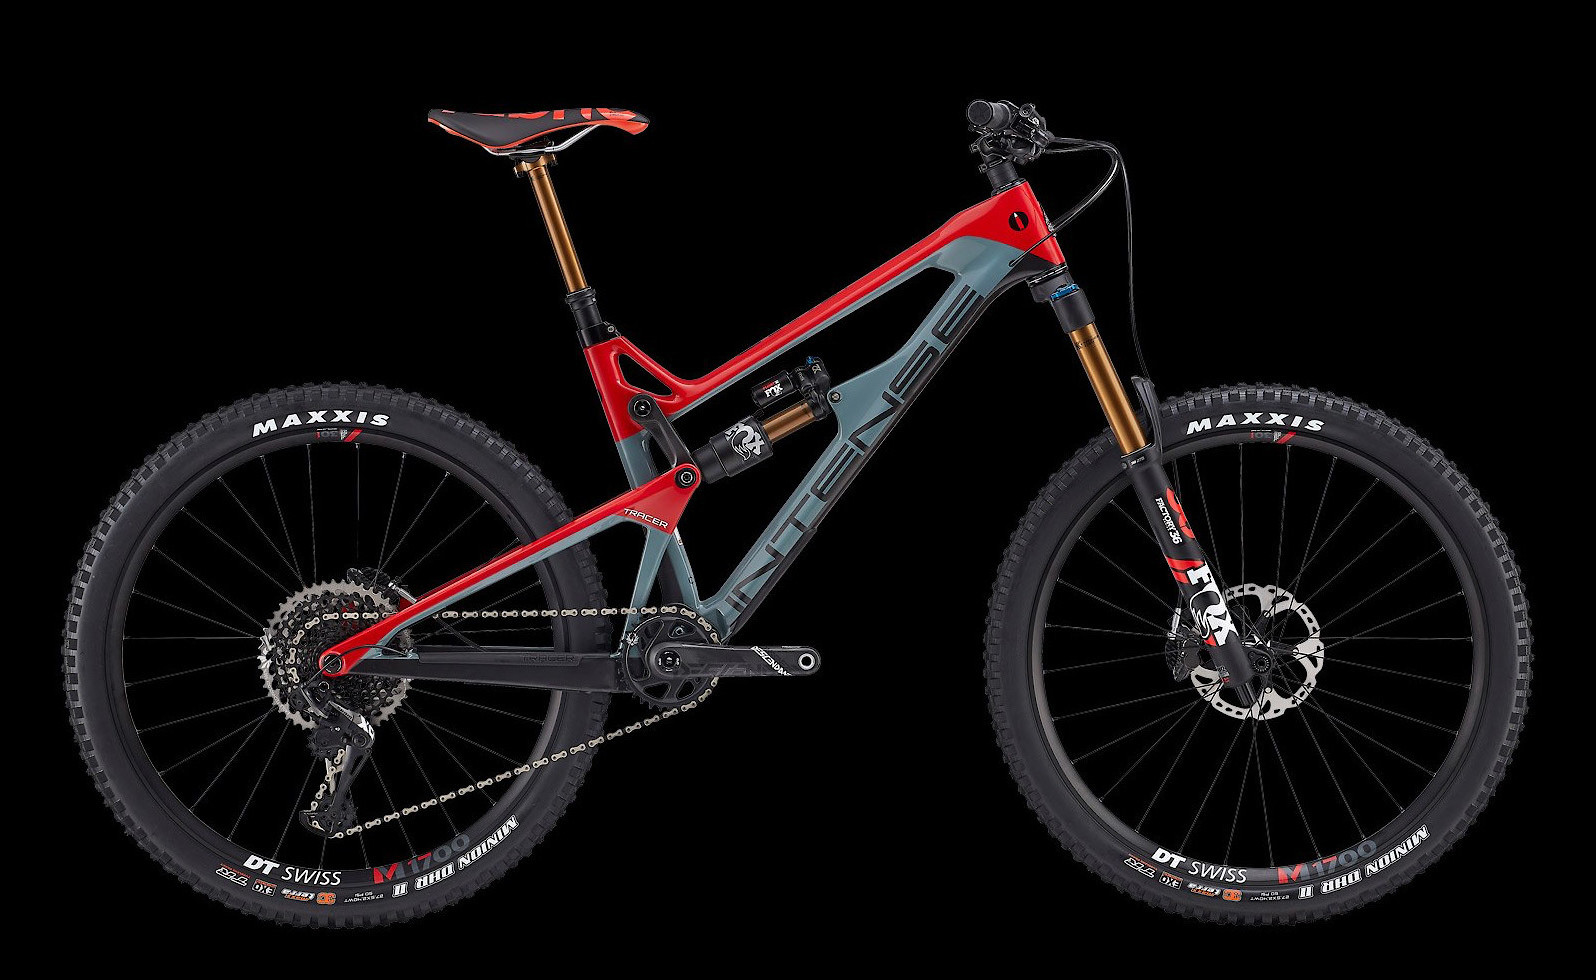 2019 Intense Tracer Foundation Bike (Pro Build shown in this photo)